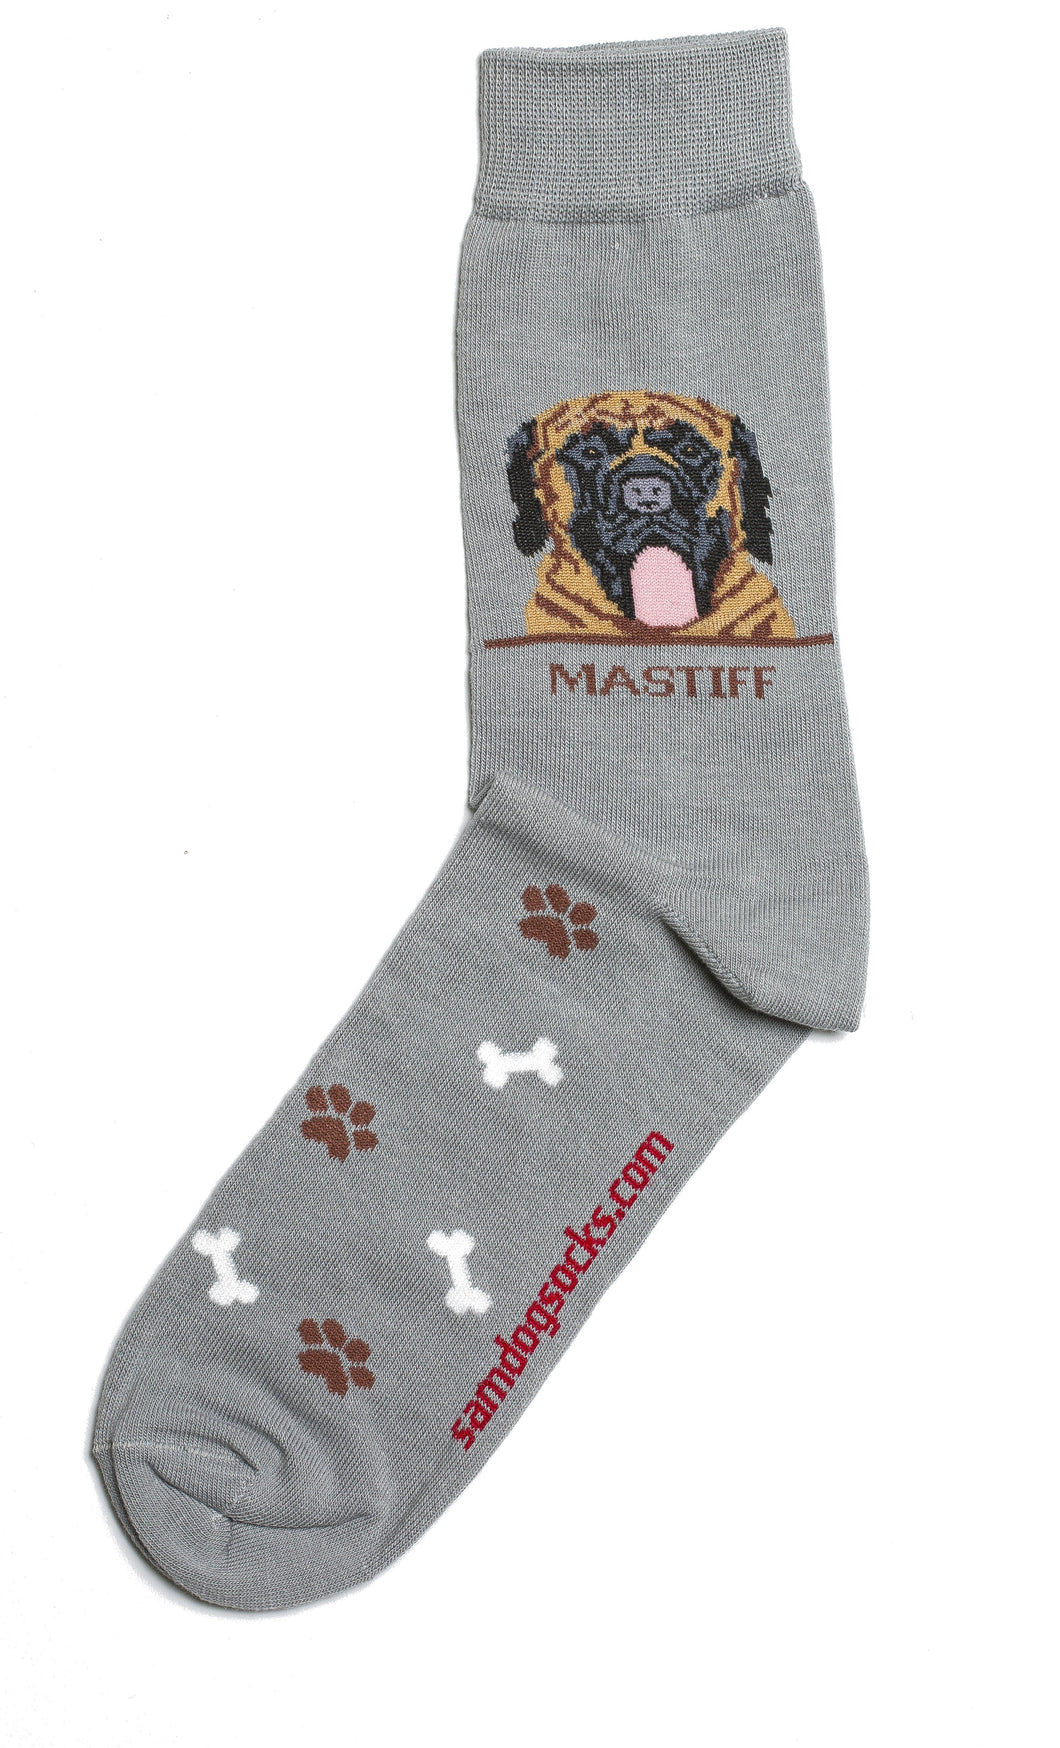 Mastiff Dog Socks Mens - samnoveltysocks.com